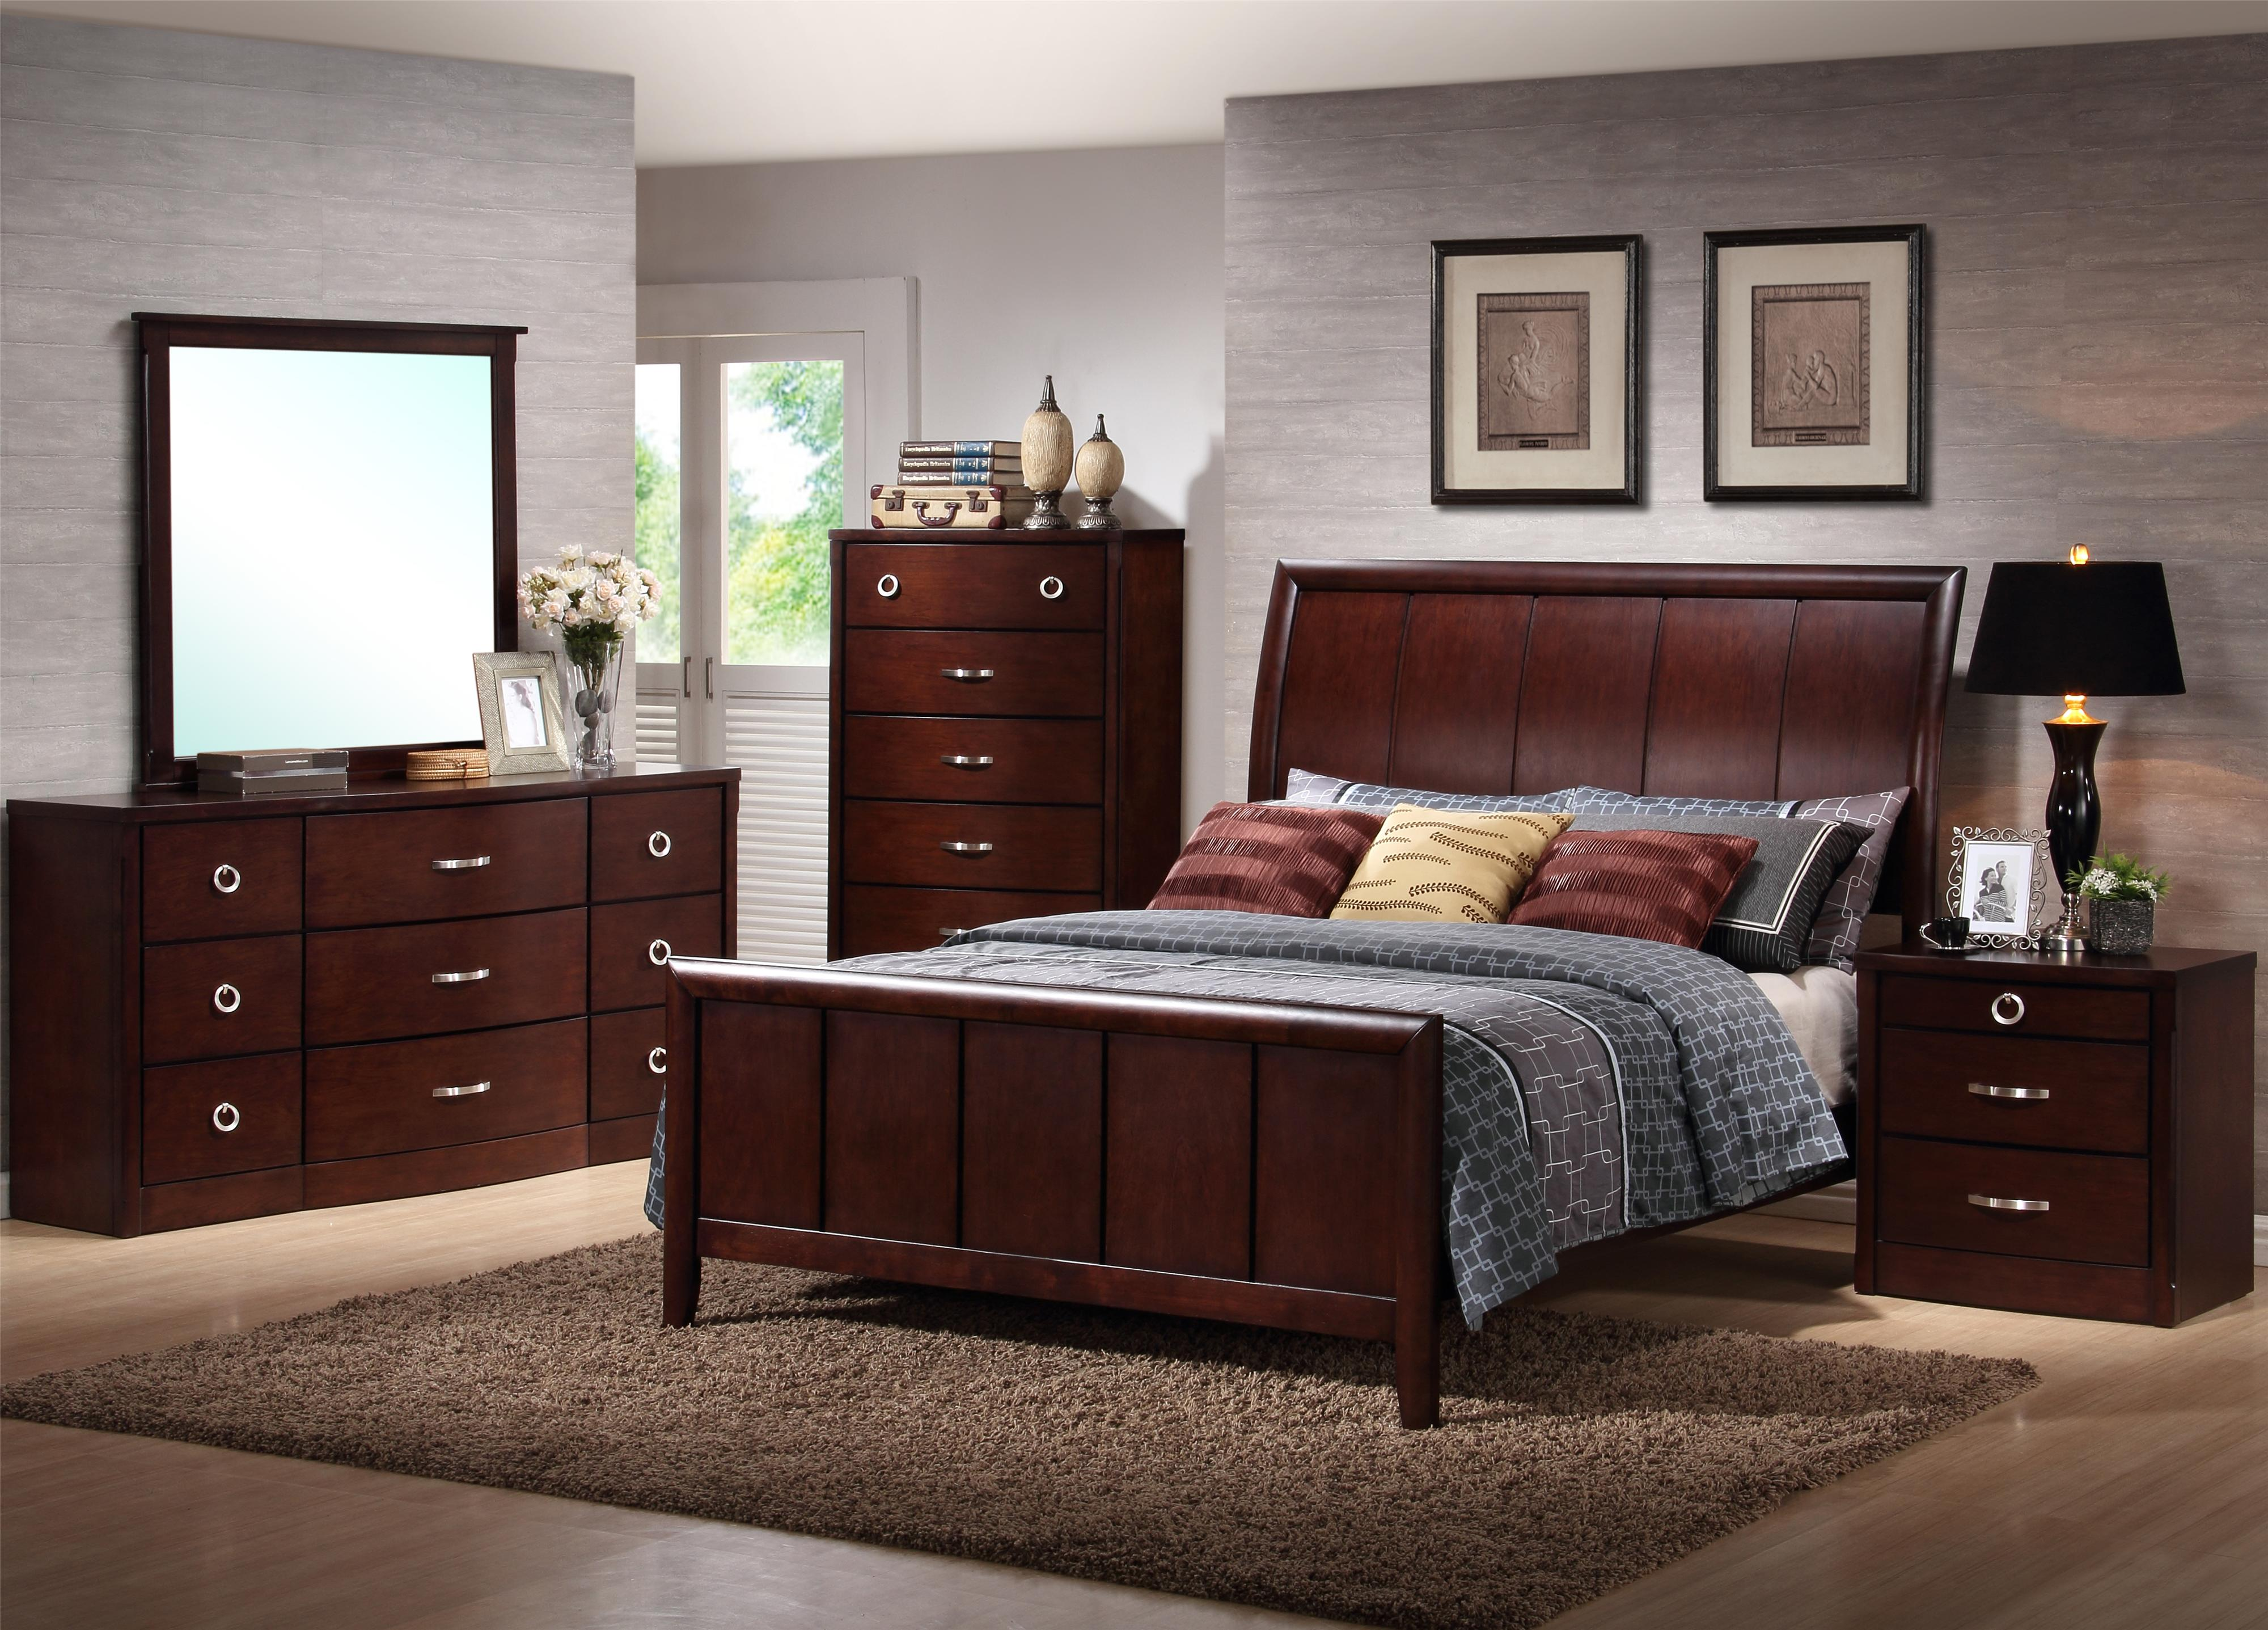 Lifestyle Furniture Bedroom Sets Lifestyle 1173 Queen Bed W Sleigh Headboard Furniture Fair